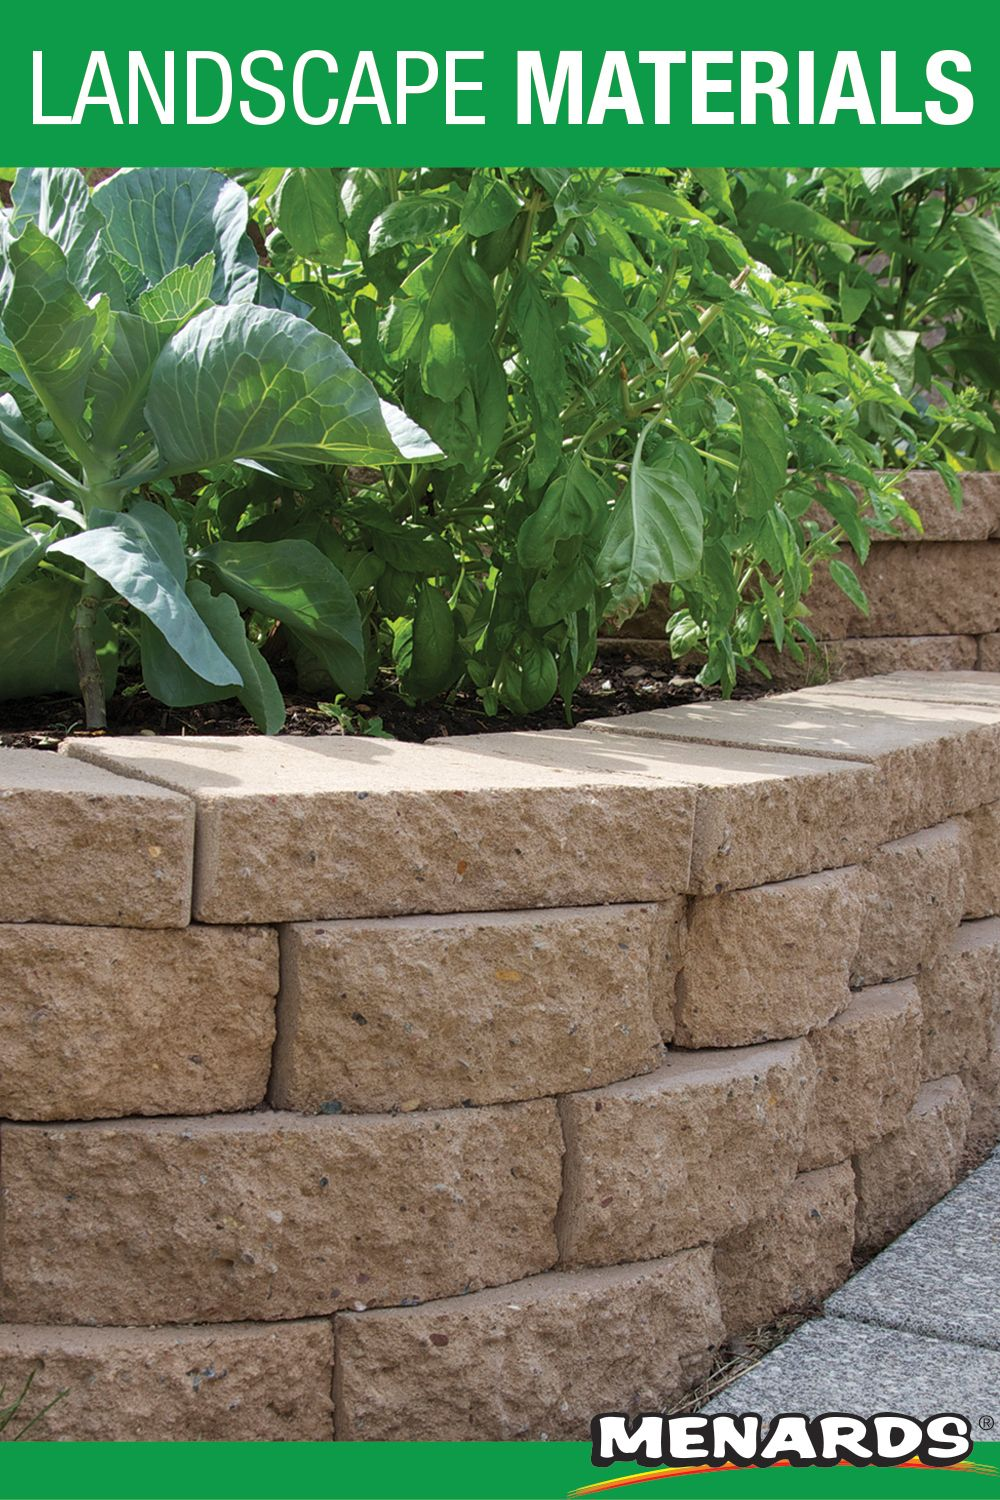 3 1 2 X 11 1 2 Crestone Beveled Retaining Wall Block In 2020 Landscape Materials Garden Wall Retaining Wall